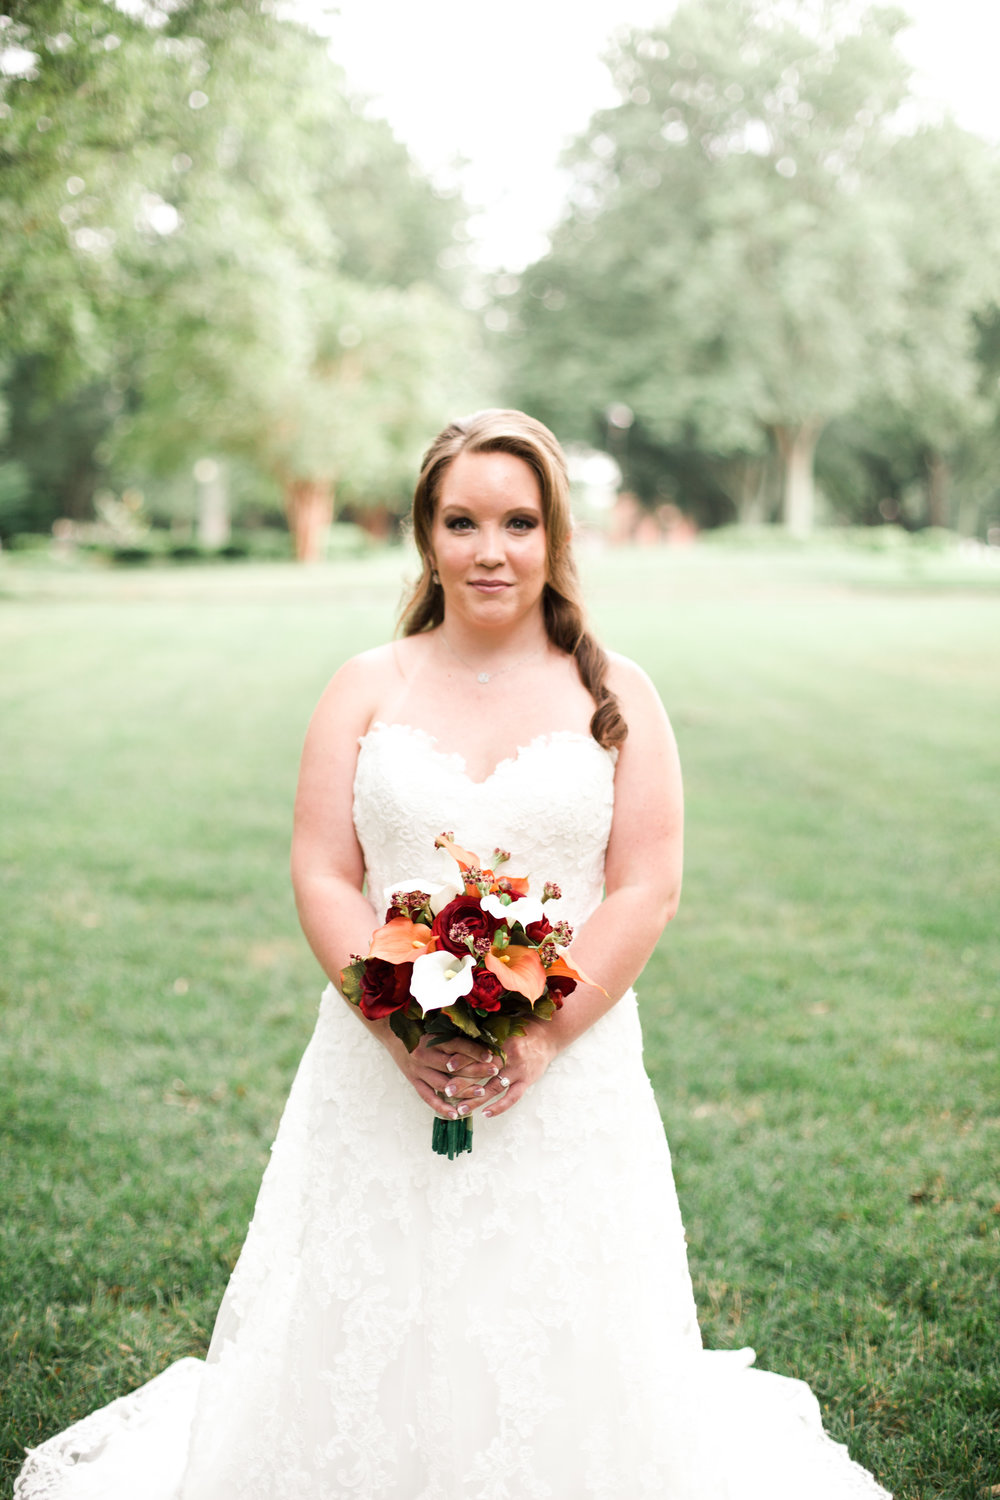 gabbie_bridal_poured_out_photography-33.jpg